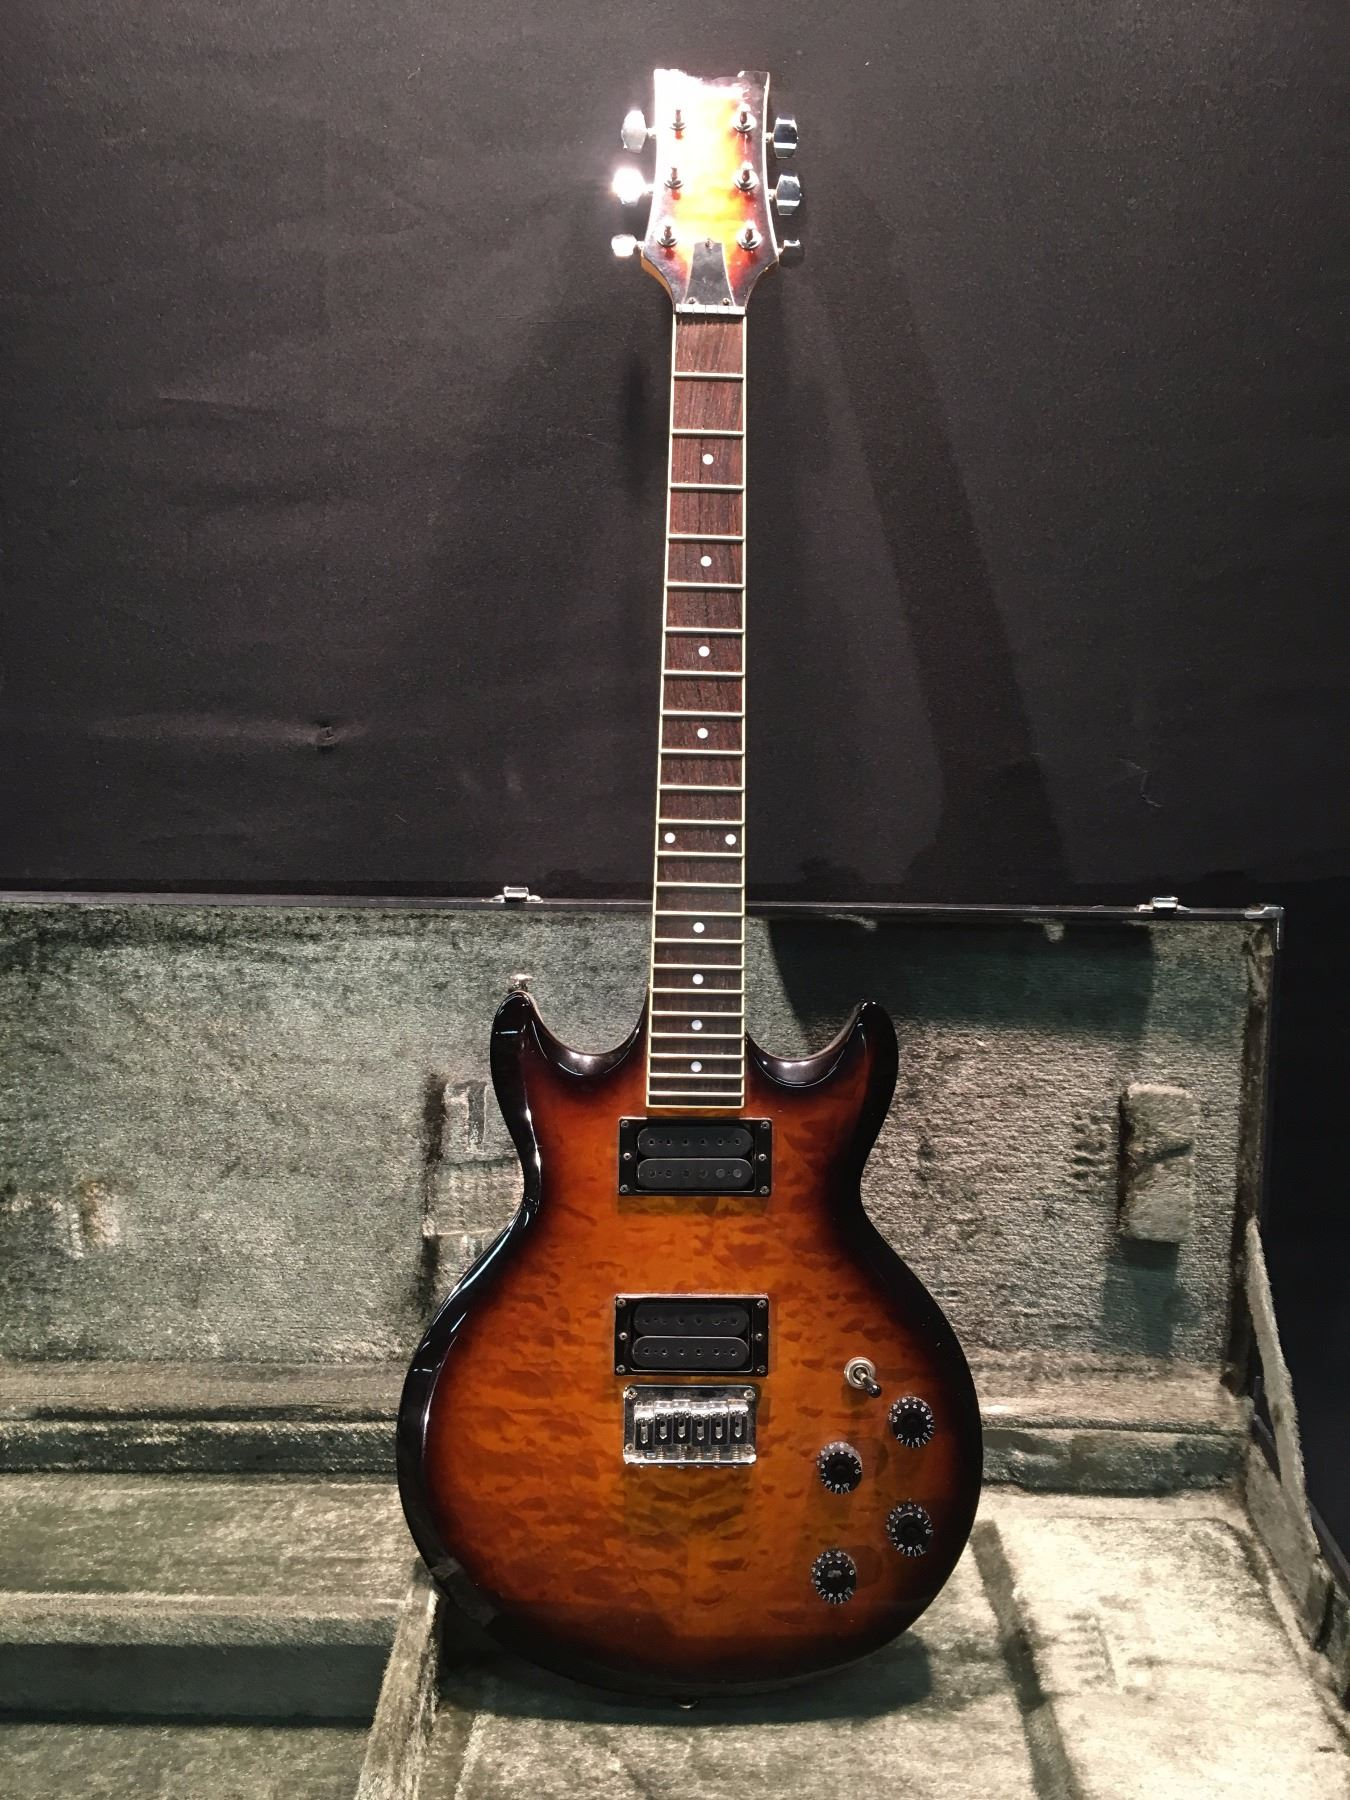 Ibanez Les Paul Style Electric Guitar Serial Number W141633 Comes